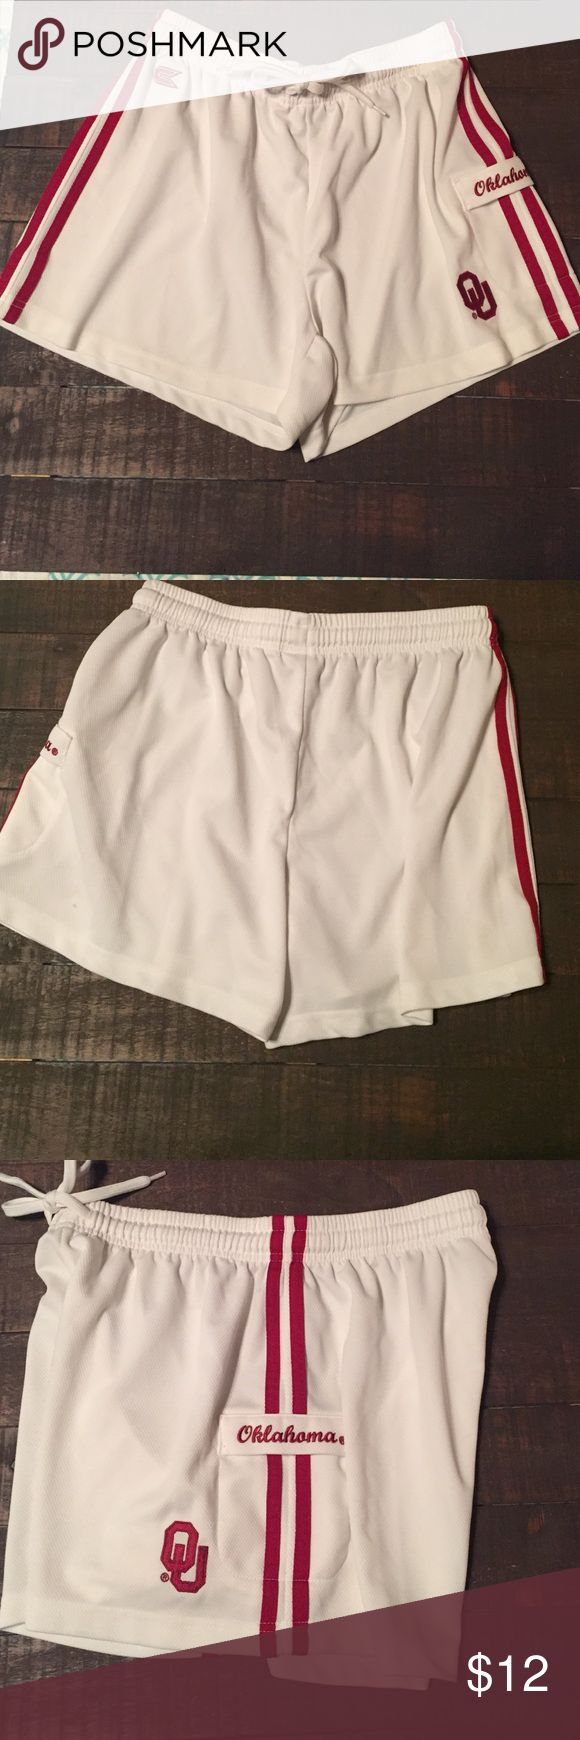 OU University of Oklahoma jersey shorts OU University of Oklahoma jersey shorts. White with red stripes and wording. Small spot pictured in last photo. I never noticed it until I folded them for the pictures. Colosseum Athletics Shorts